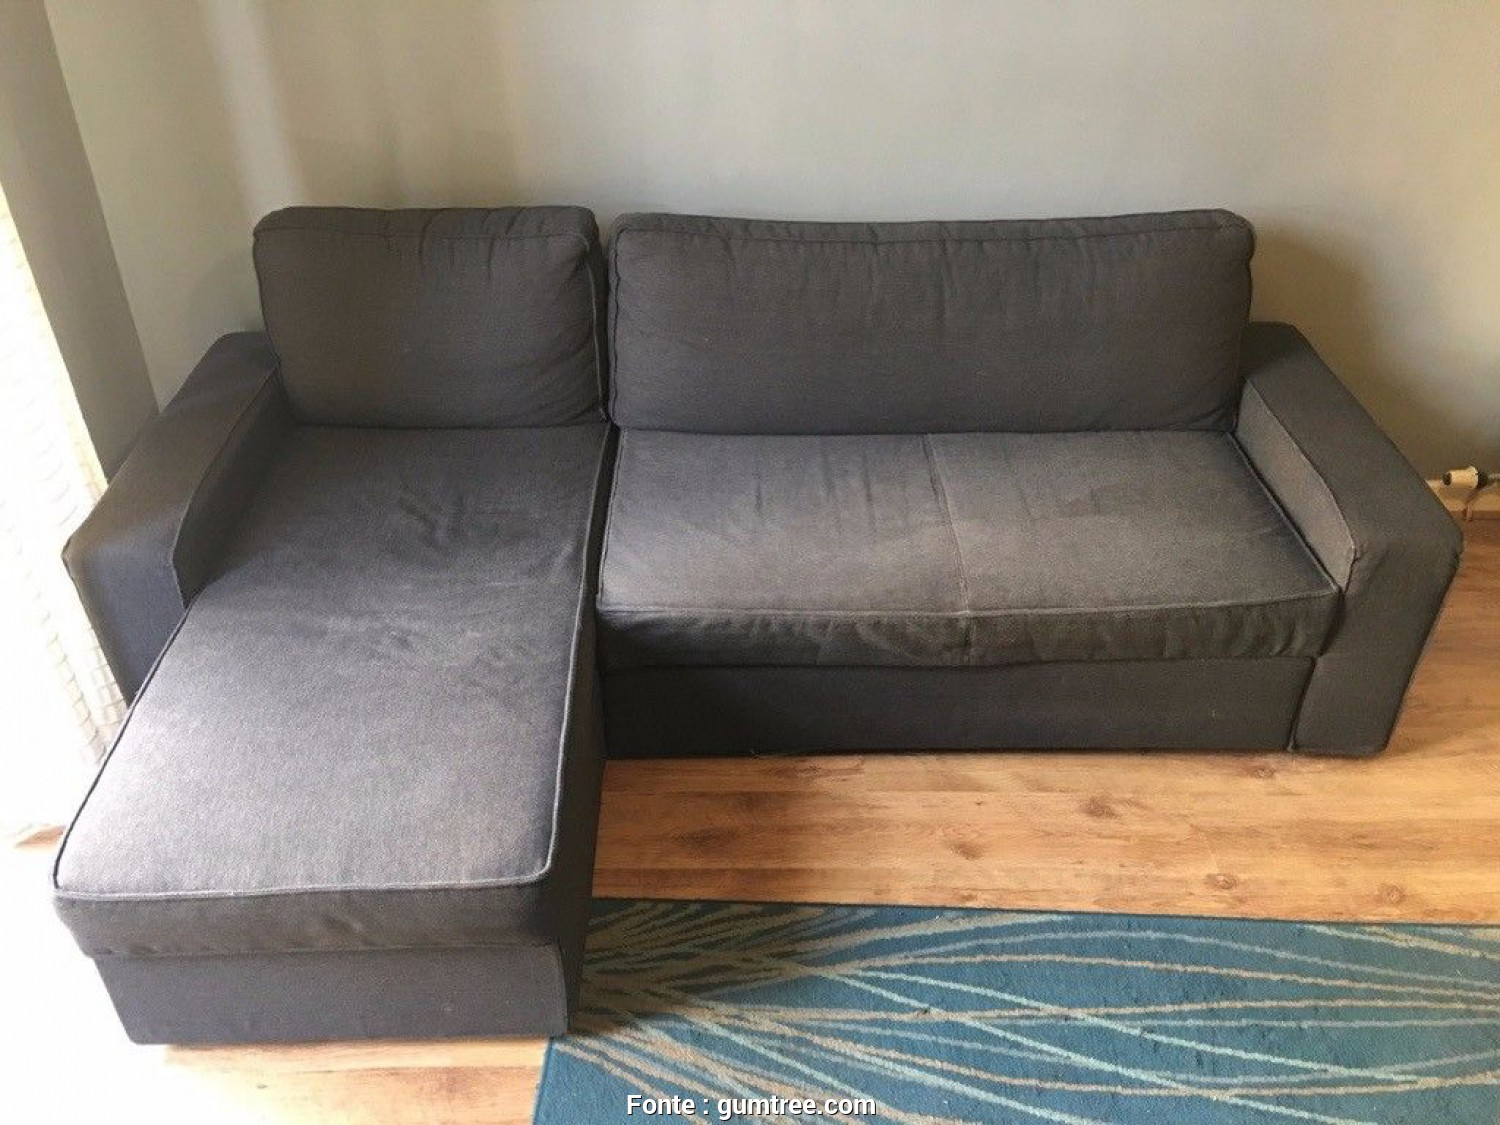 Vilasund Sofa, Ikea, Semplice IKEA VILASUND Sofa, With Chaise Longue In Excellent Condition, In Southside, Glasgow, Gumtree